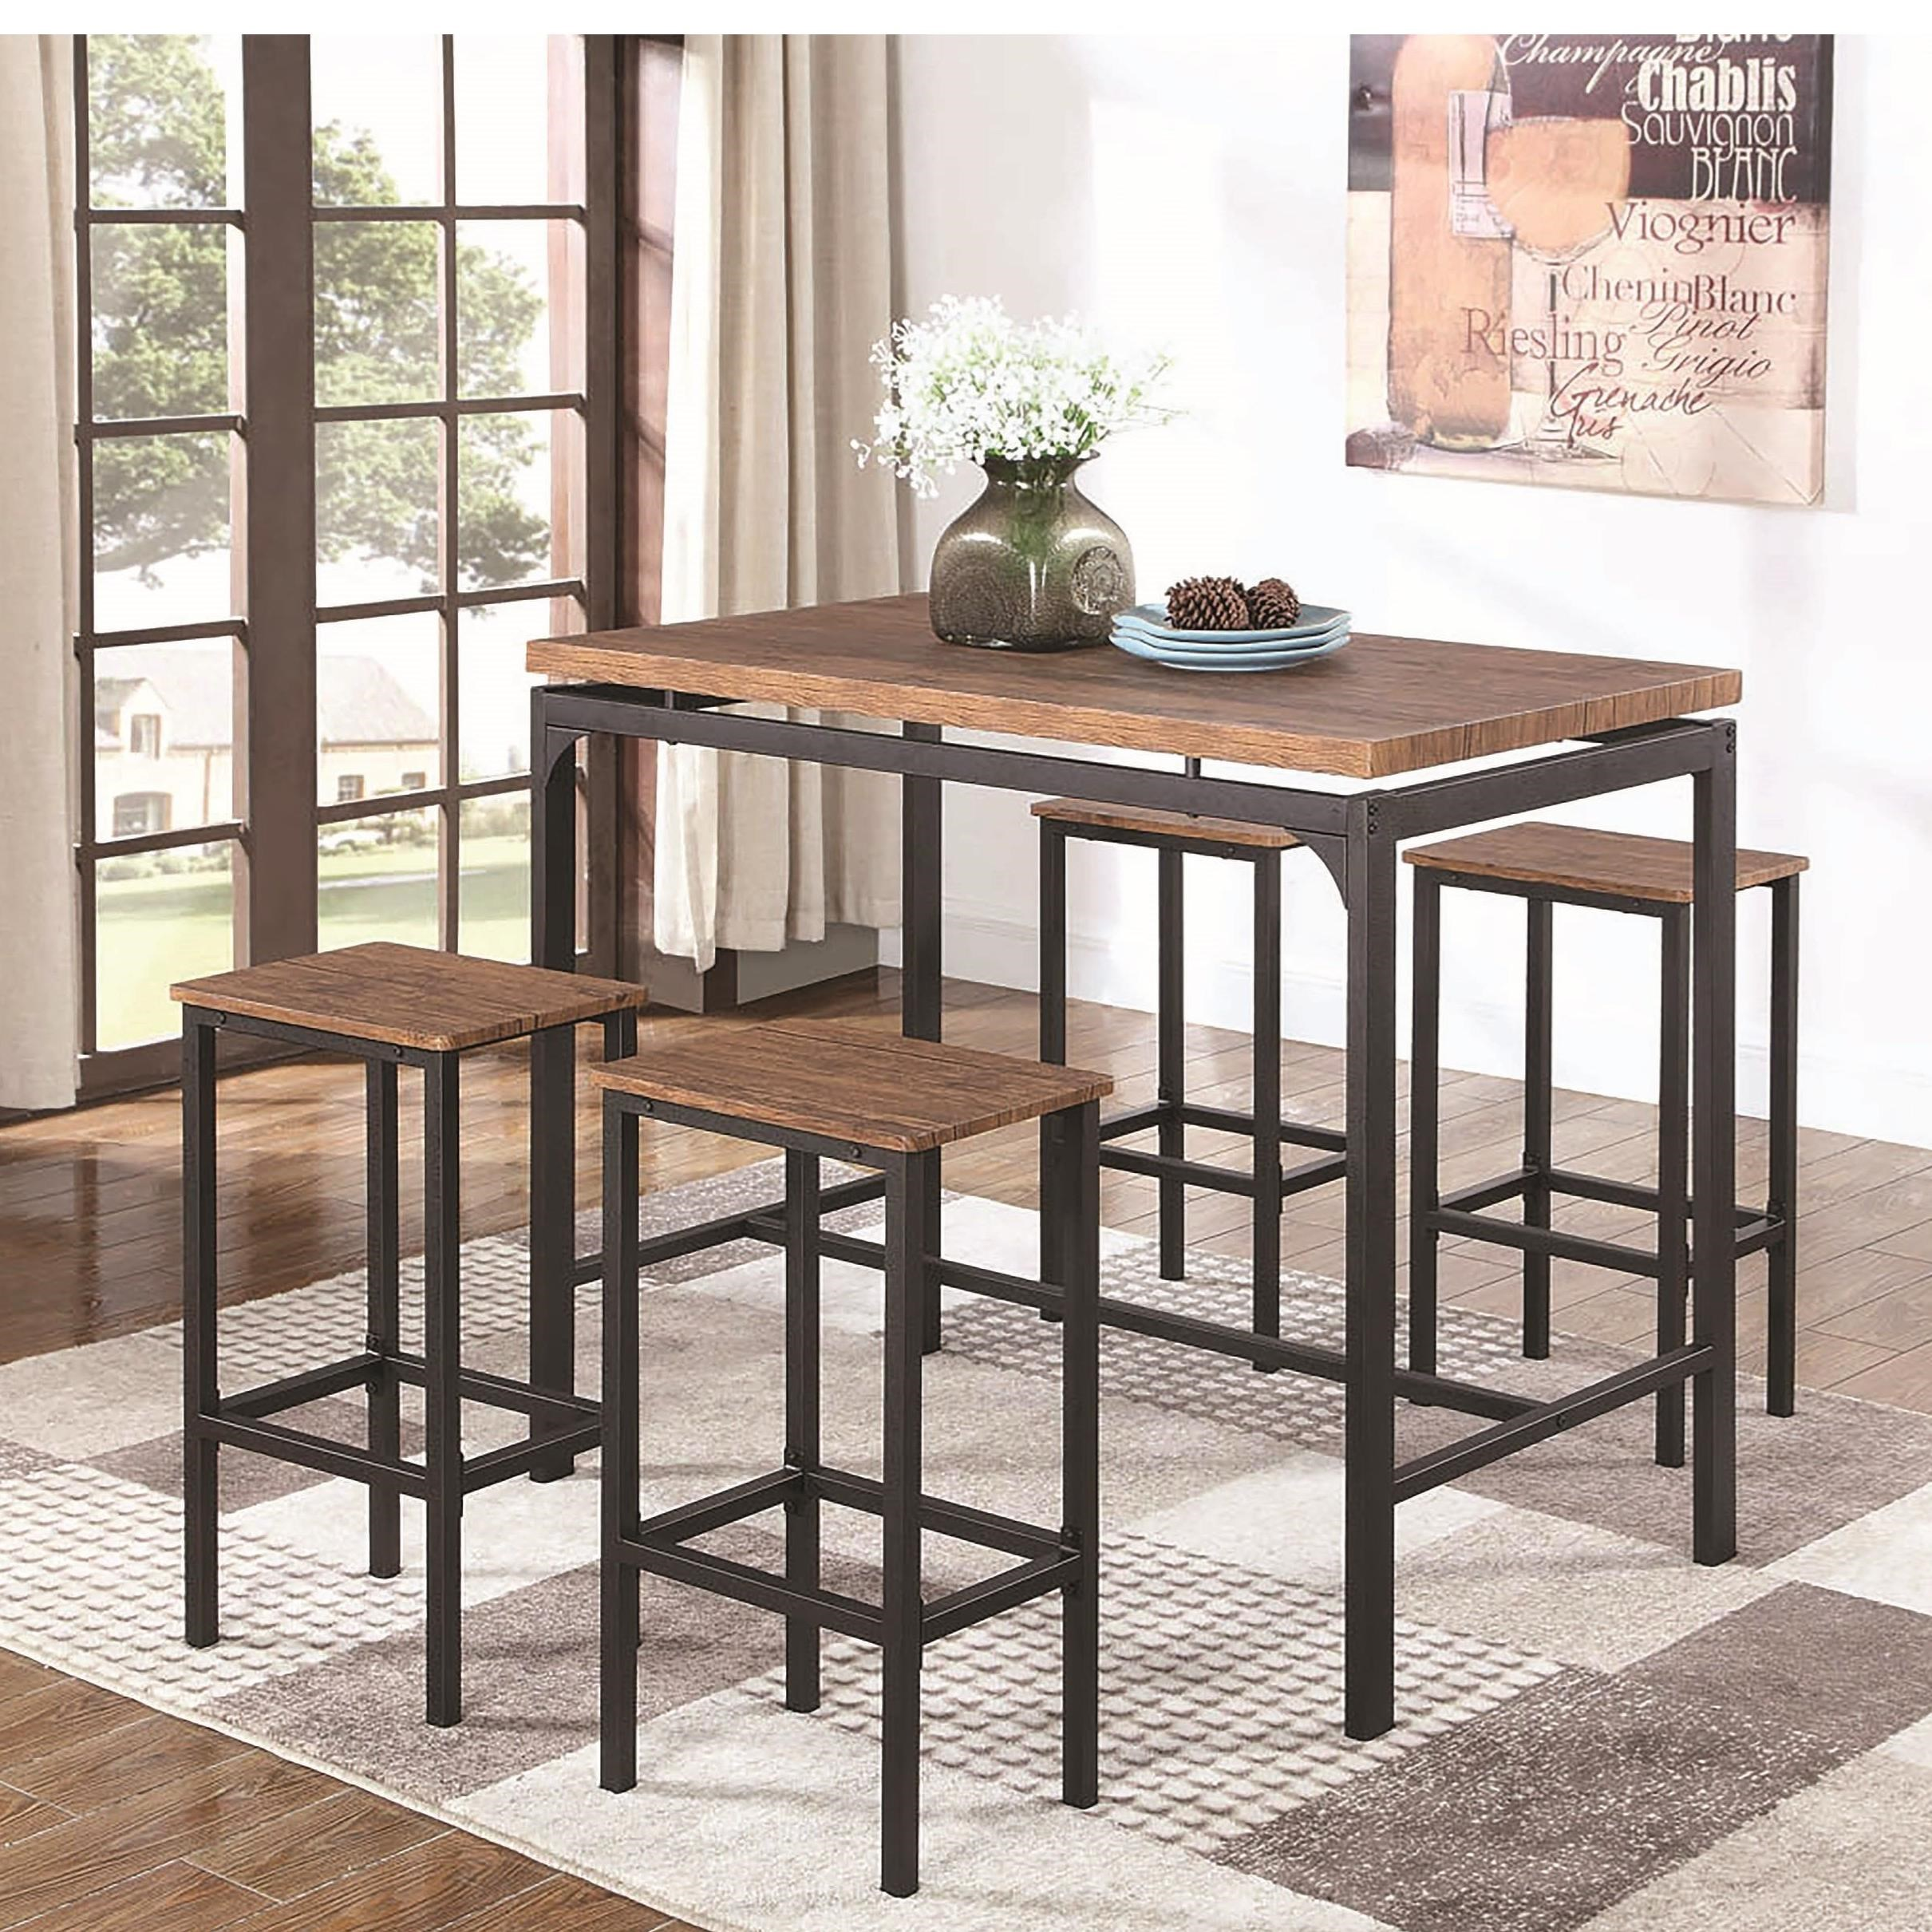 182002 Table and Chair Set for Four by Coaster at Rooms for Less